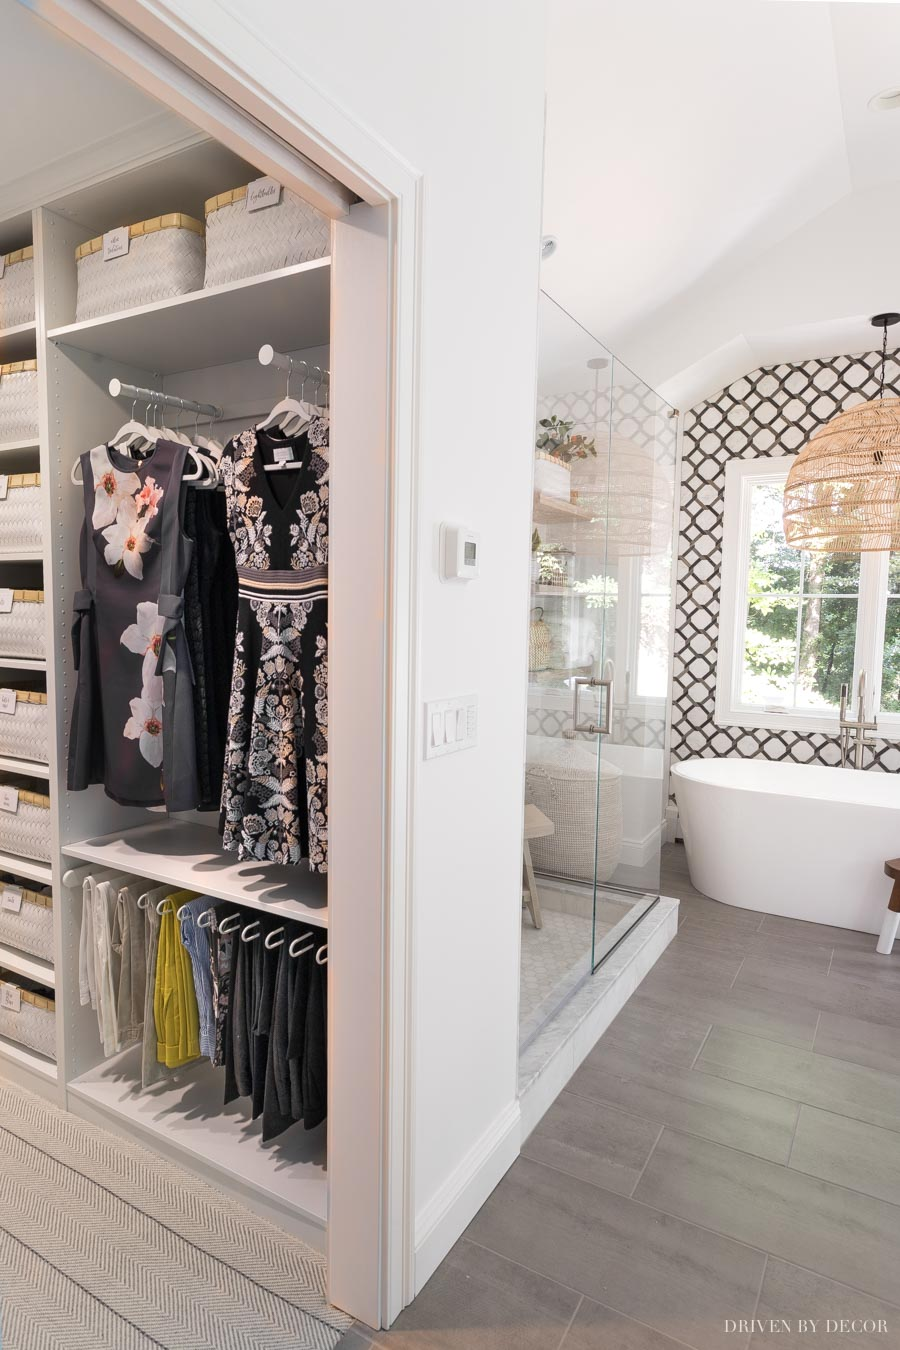 A Tour Of Our New Closet Ikea Pax Closet System Review Driven By Decor